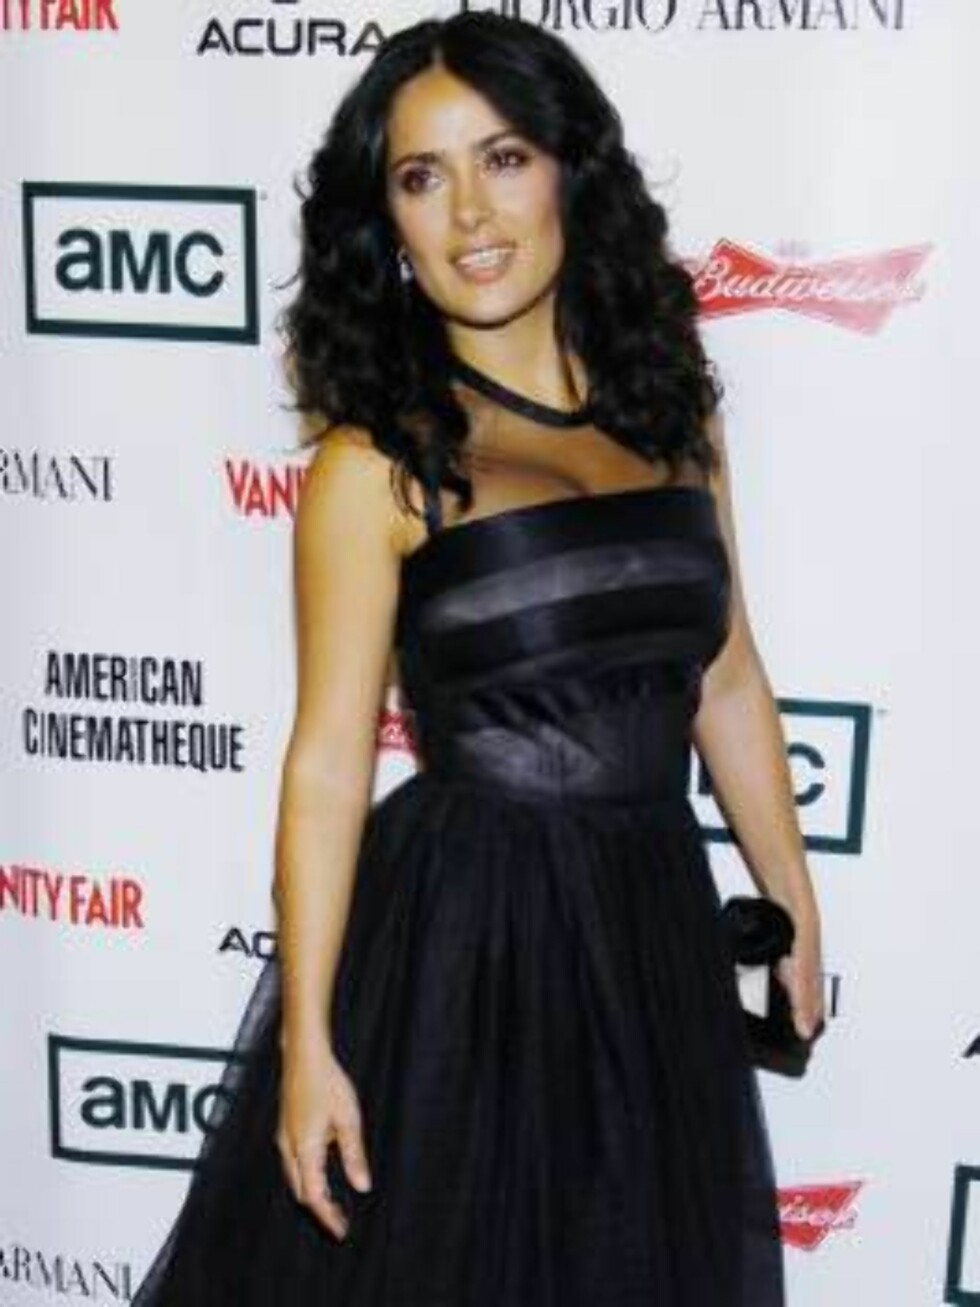 Actress Salma Hayek arrives for the 21st Annual American Cinematheque Award event honoring George Clooney, in Beverly Hills, Calif., Friday, Oct. 13, 2006. (AP Photo/Chris Pizzello) Foto: AP